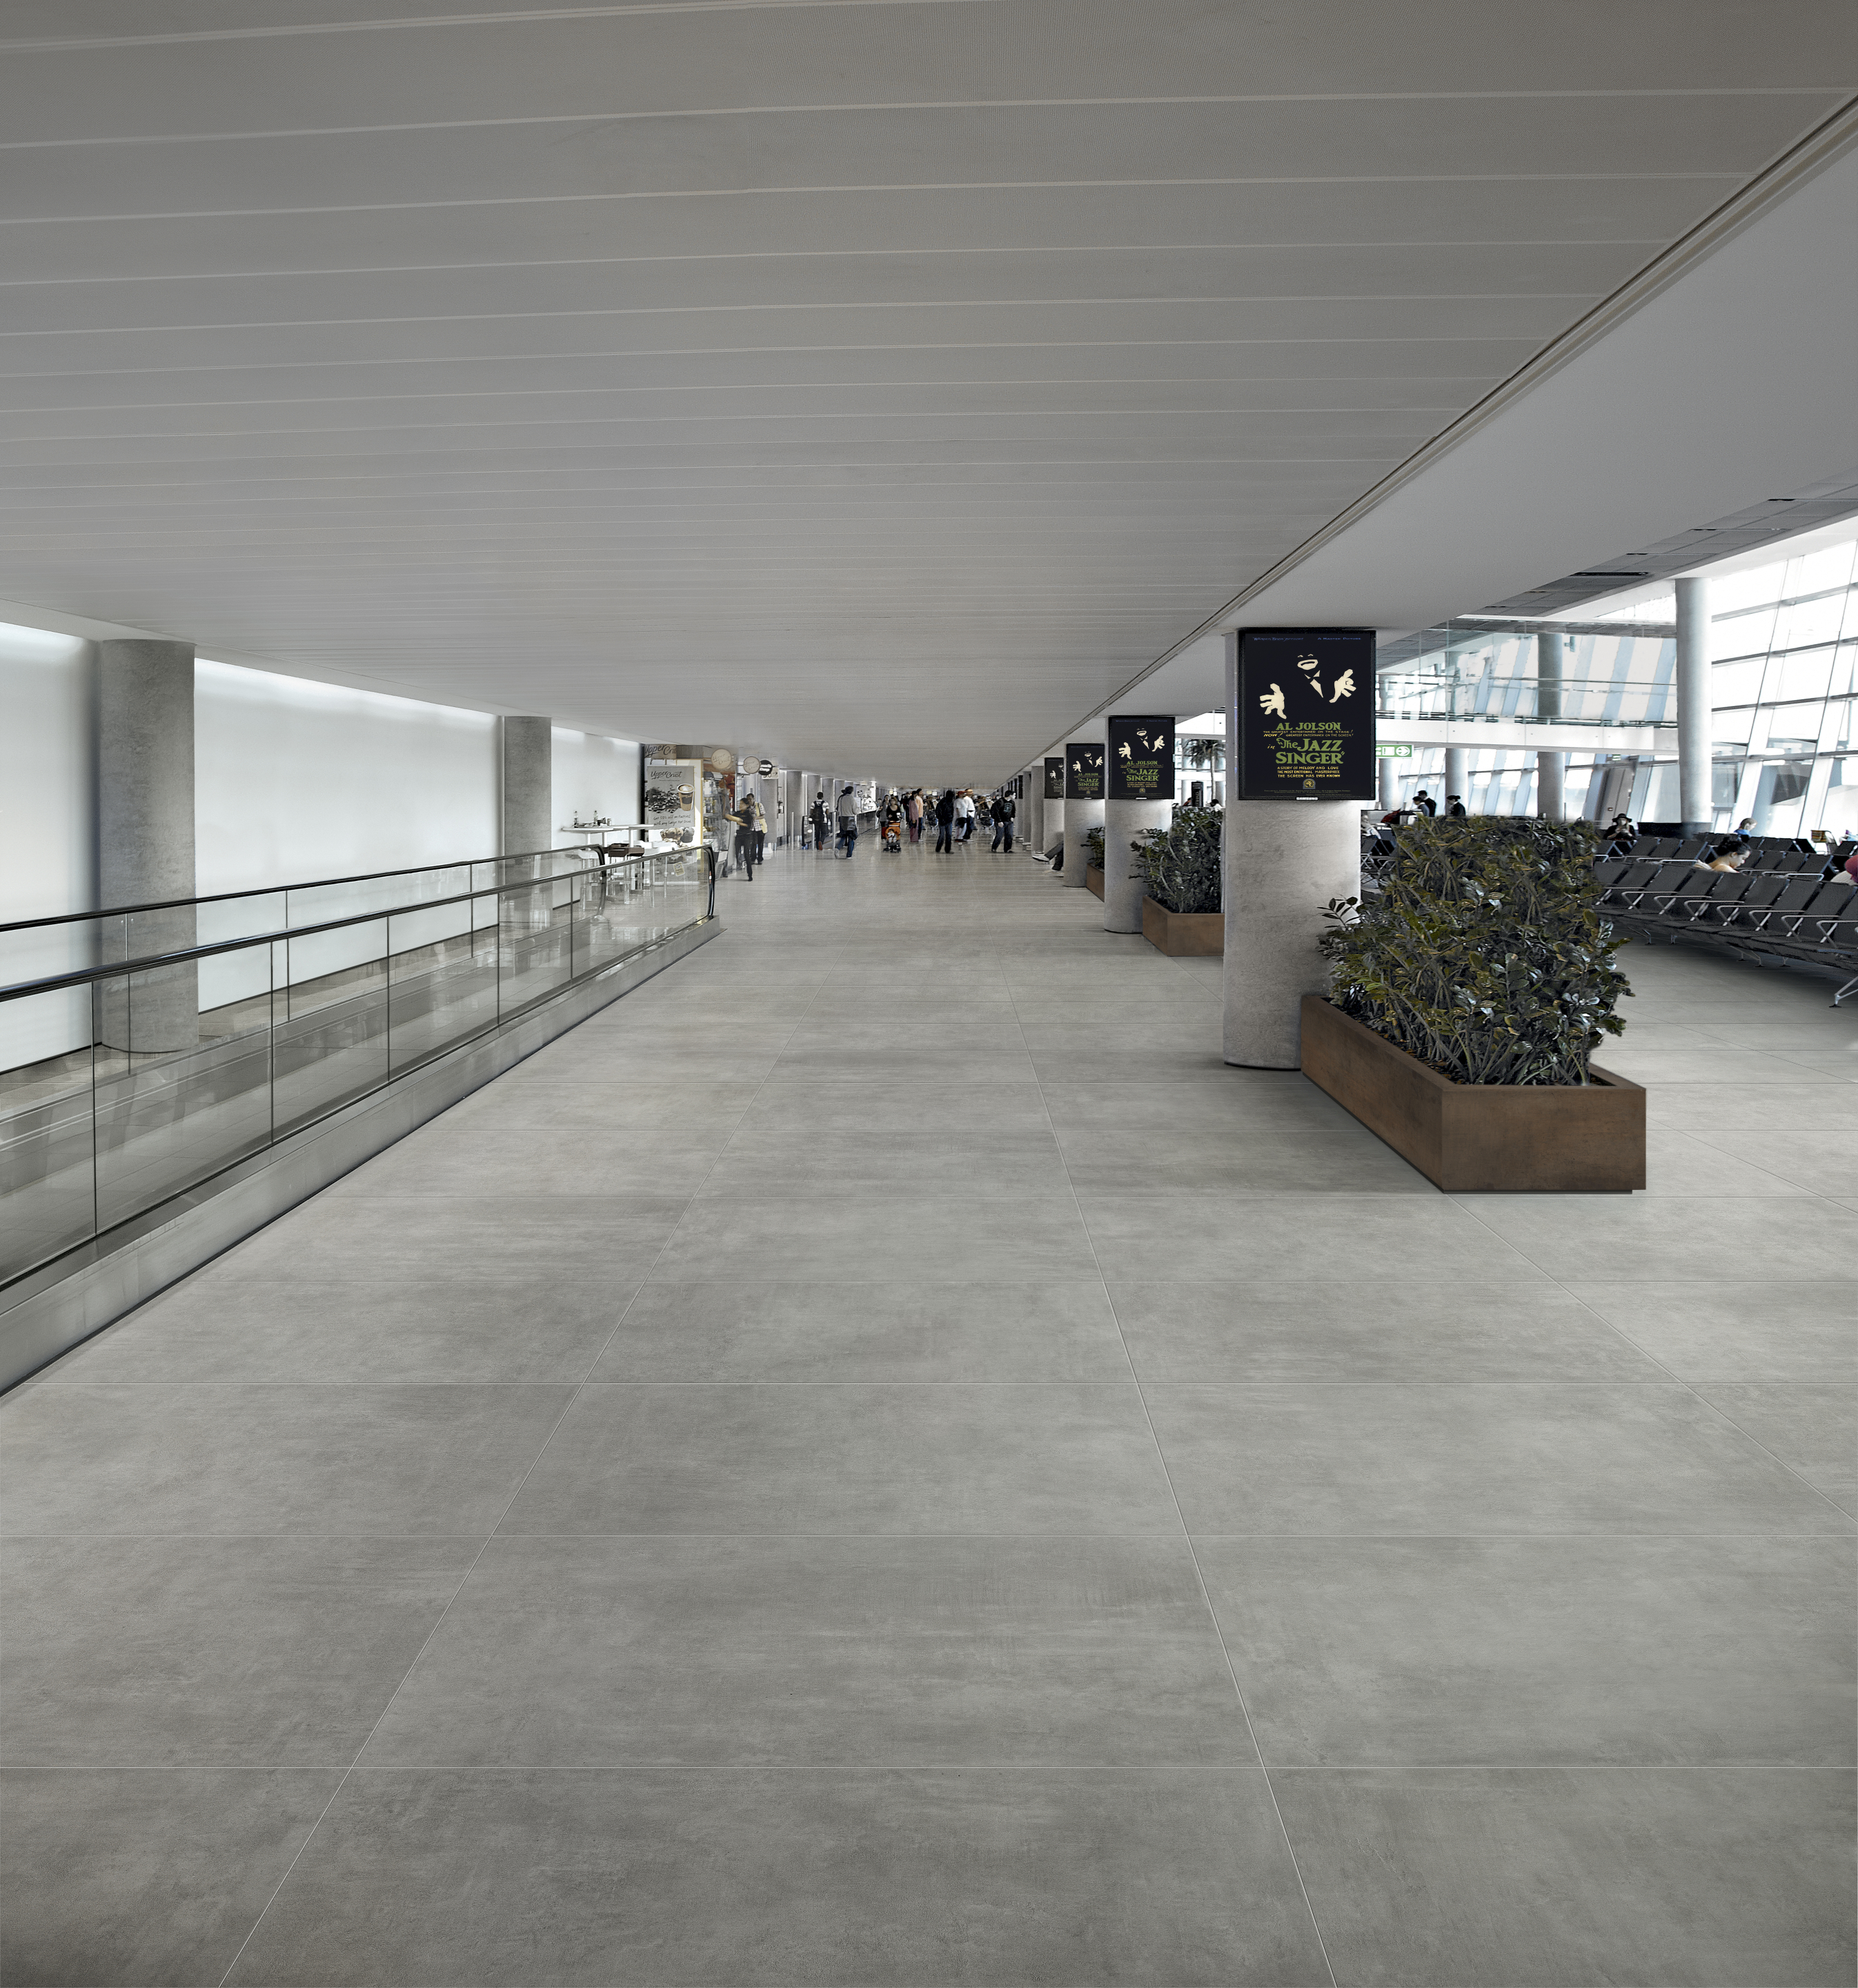 gun_powder_airport_3 copia